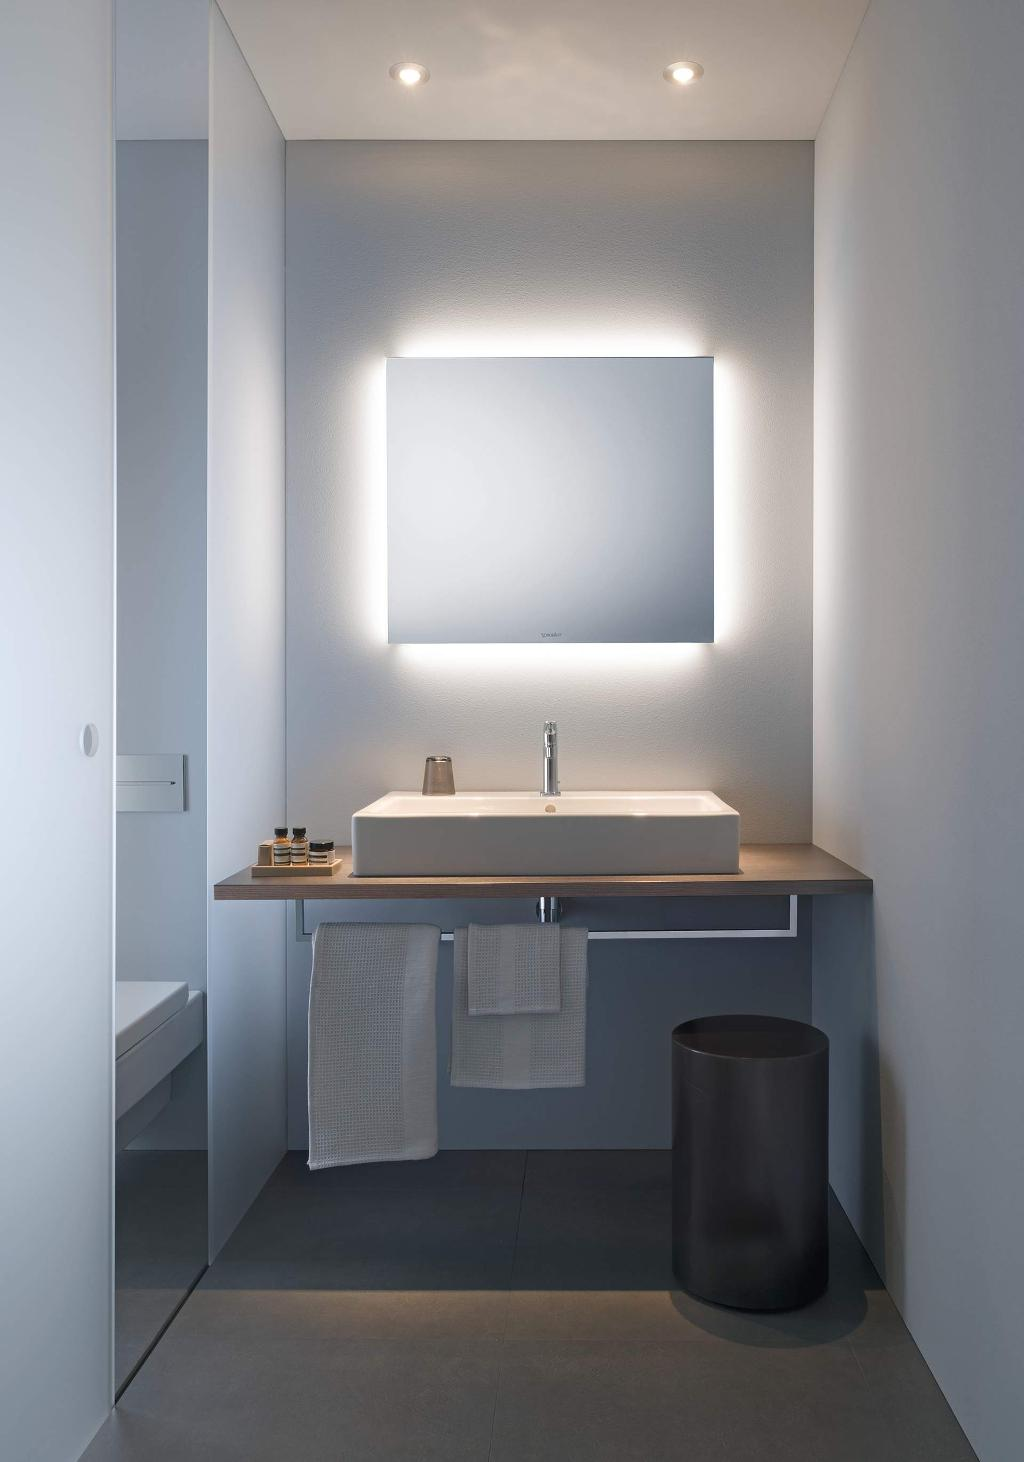 Light and Mirror: Design bathroom mirrors | Duravit on small bathroom glass, small bathroom home improvement, small bathroom wall decoration, small bathroom designs, small ceiling ideas, small bathroom before and afters, small bathroom modern, small light bulbs ideas, small bathroom master bedroom, small bathroom recessed lighting, small bathroom bathrooms, small decor ideas, small bathroom interior decorating, small bathroom ceiling lighting, small bathroom fixtures, modern bathroom wall covering ideas, small bathroom lighting tips, small bathroom wall heaters, small can light trim, small bathroom fireplace,